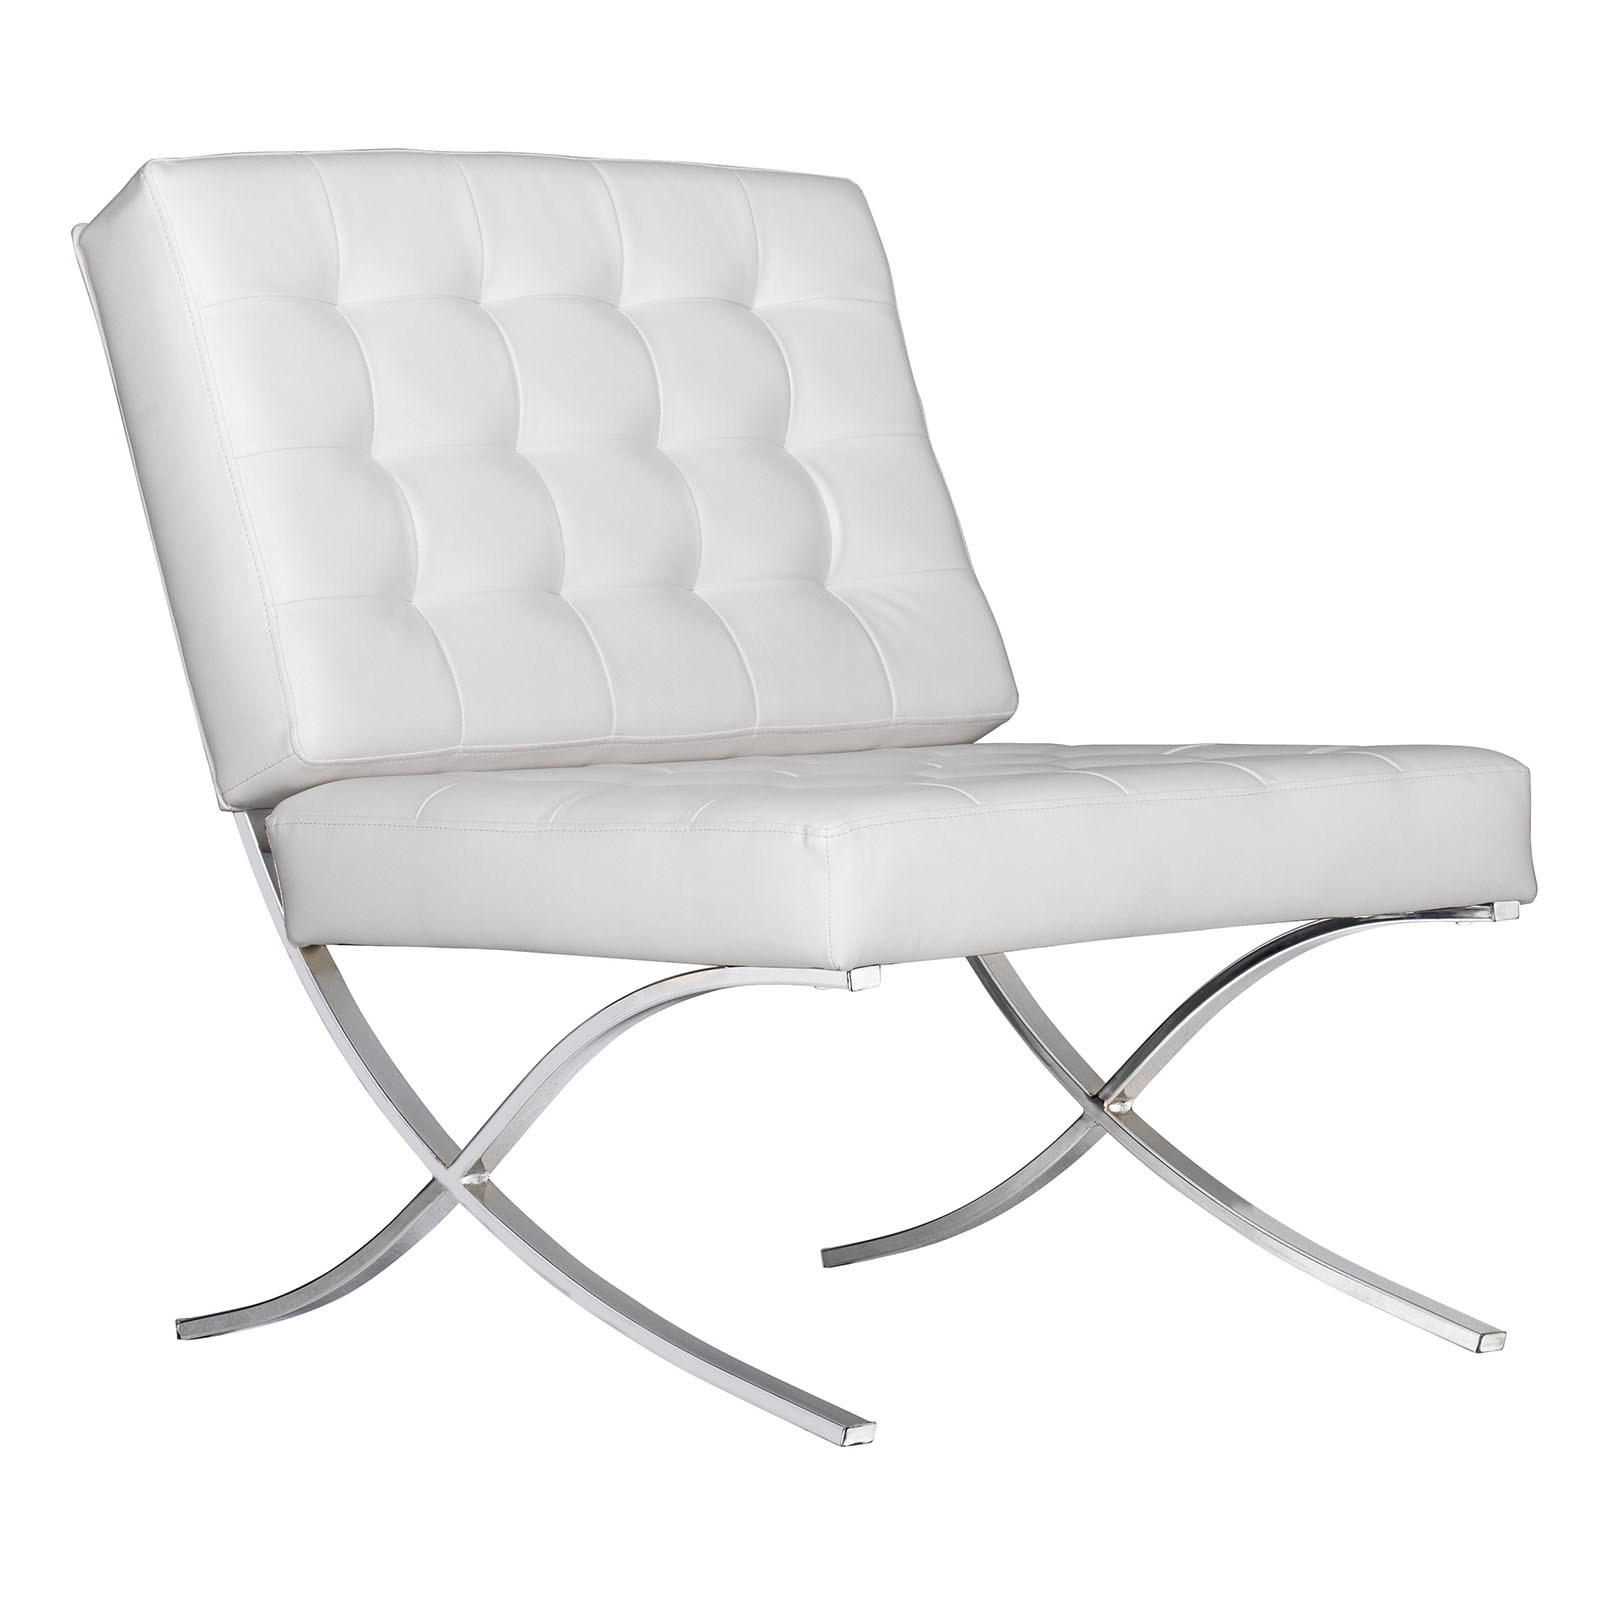 70202 Atrium Chair